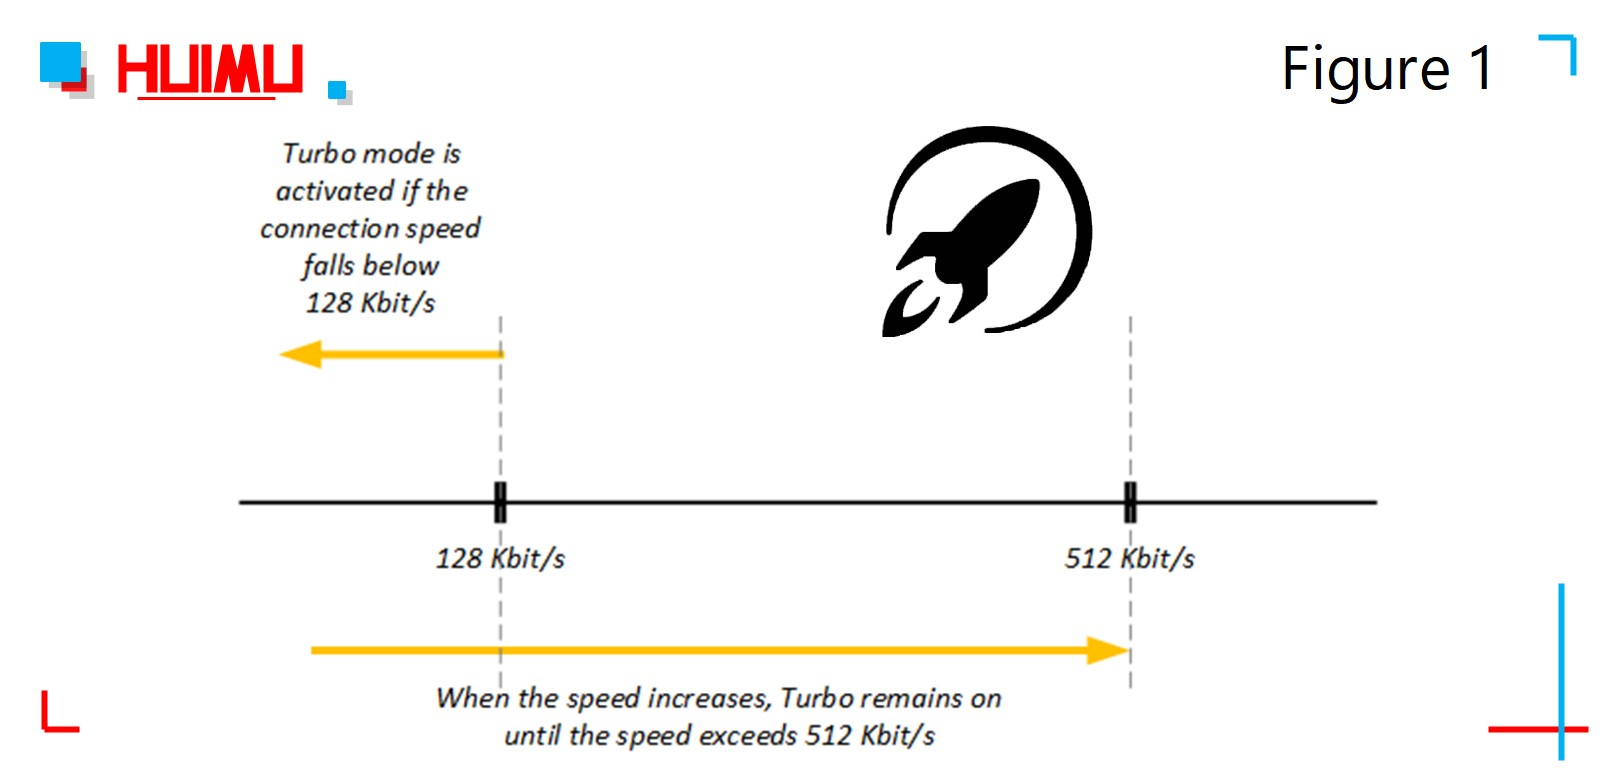 There are two thresholds that determine when Turbo mode switches on and off. More detail via www.@huimultd.com